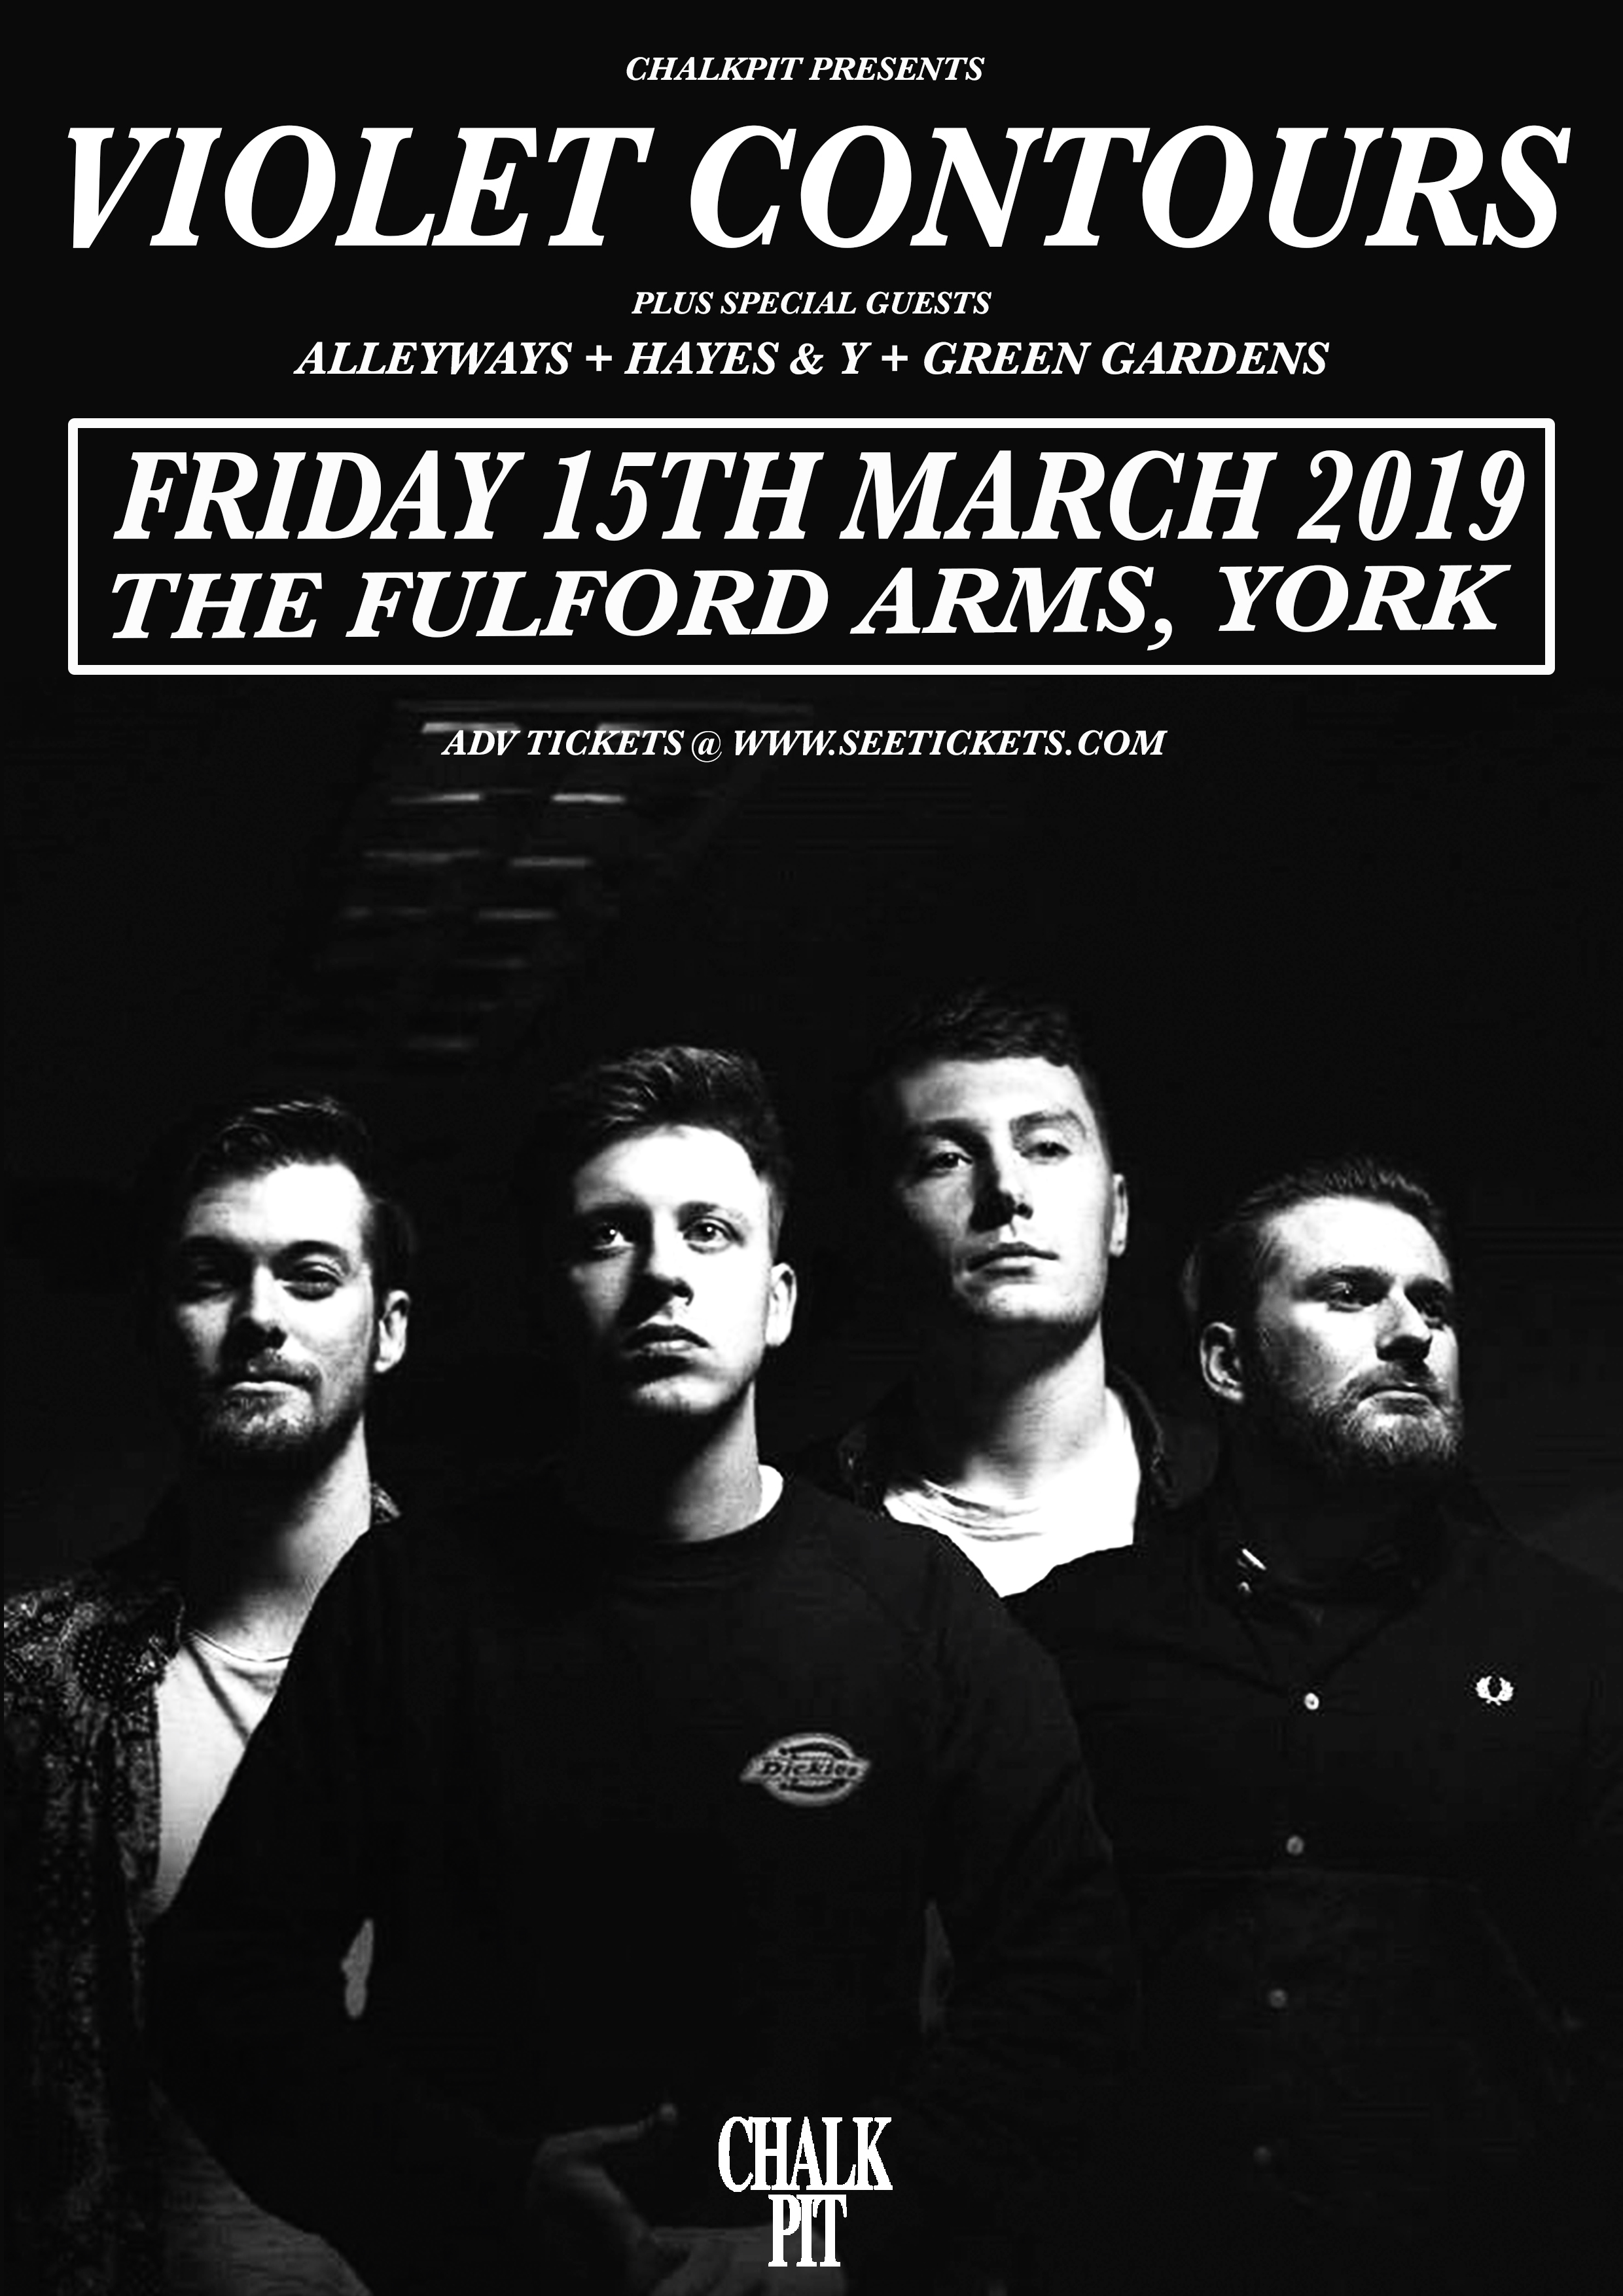 Violet Contours, Live at The Fulford Arms, York